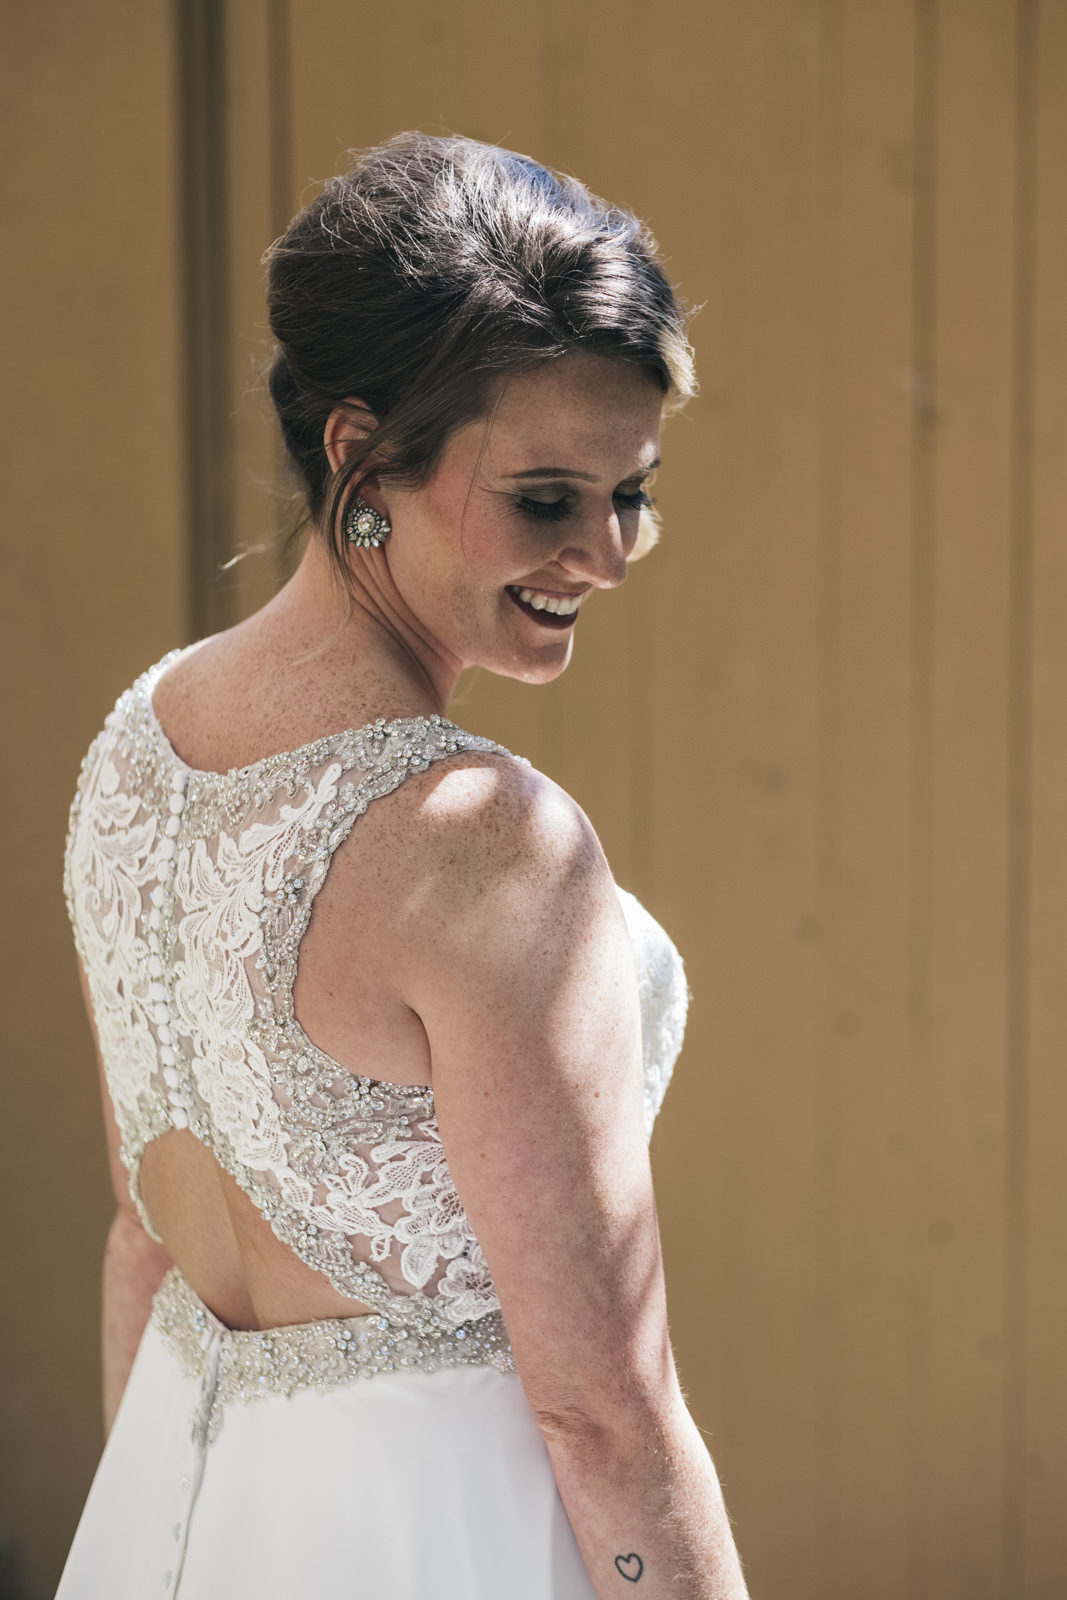 Chris looks over her shoulder and smiles before her wedding ceremony at The Premier in Maumee, Ohio.